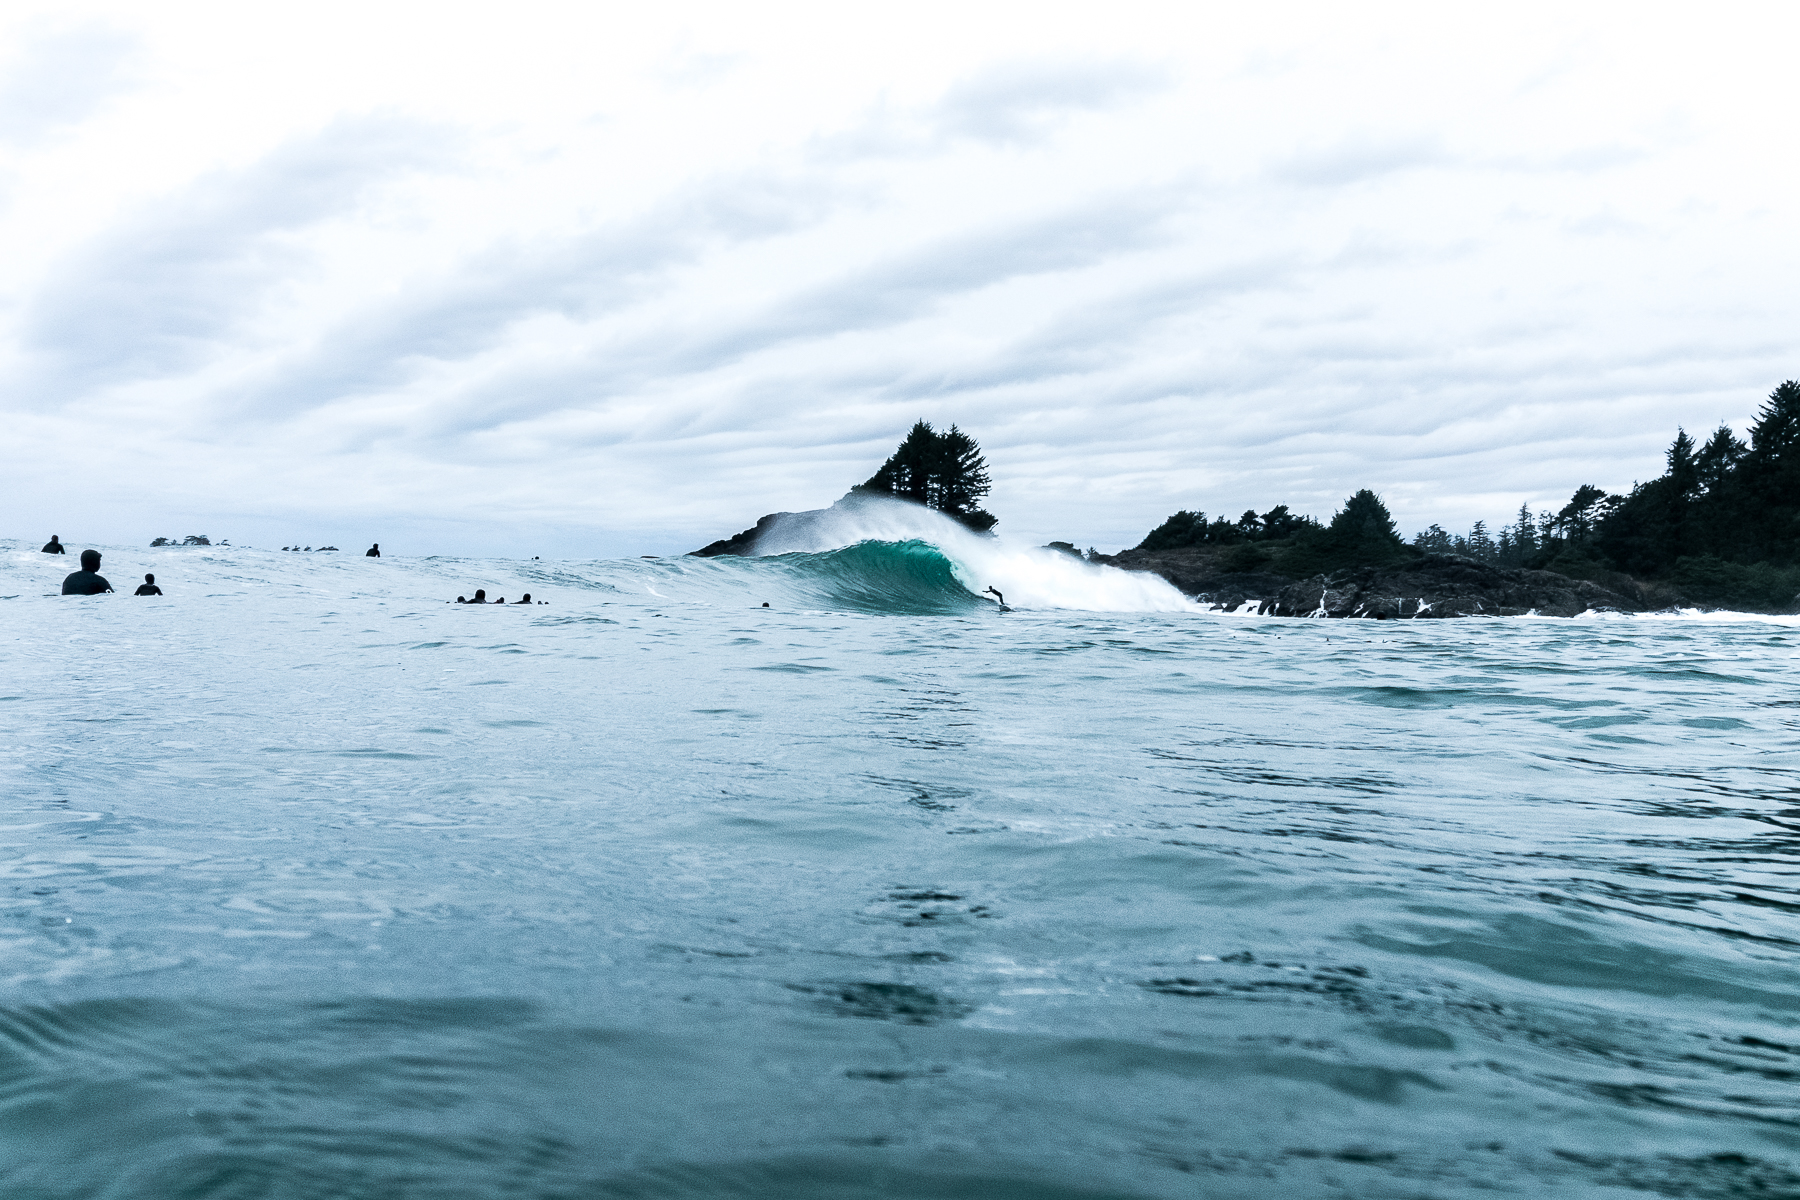 tofino_surf_photography-raph_bruhwiler_wave_of_winter_2019.jpg